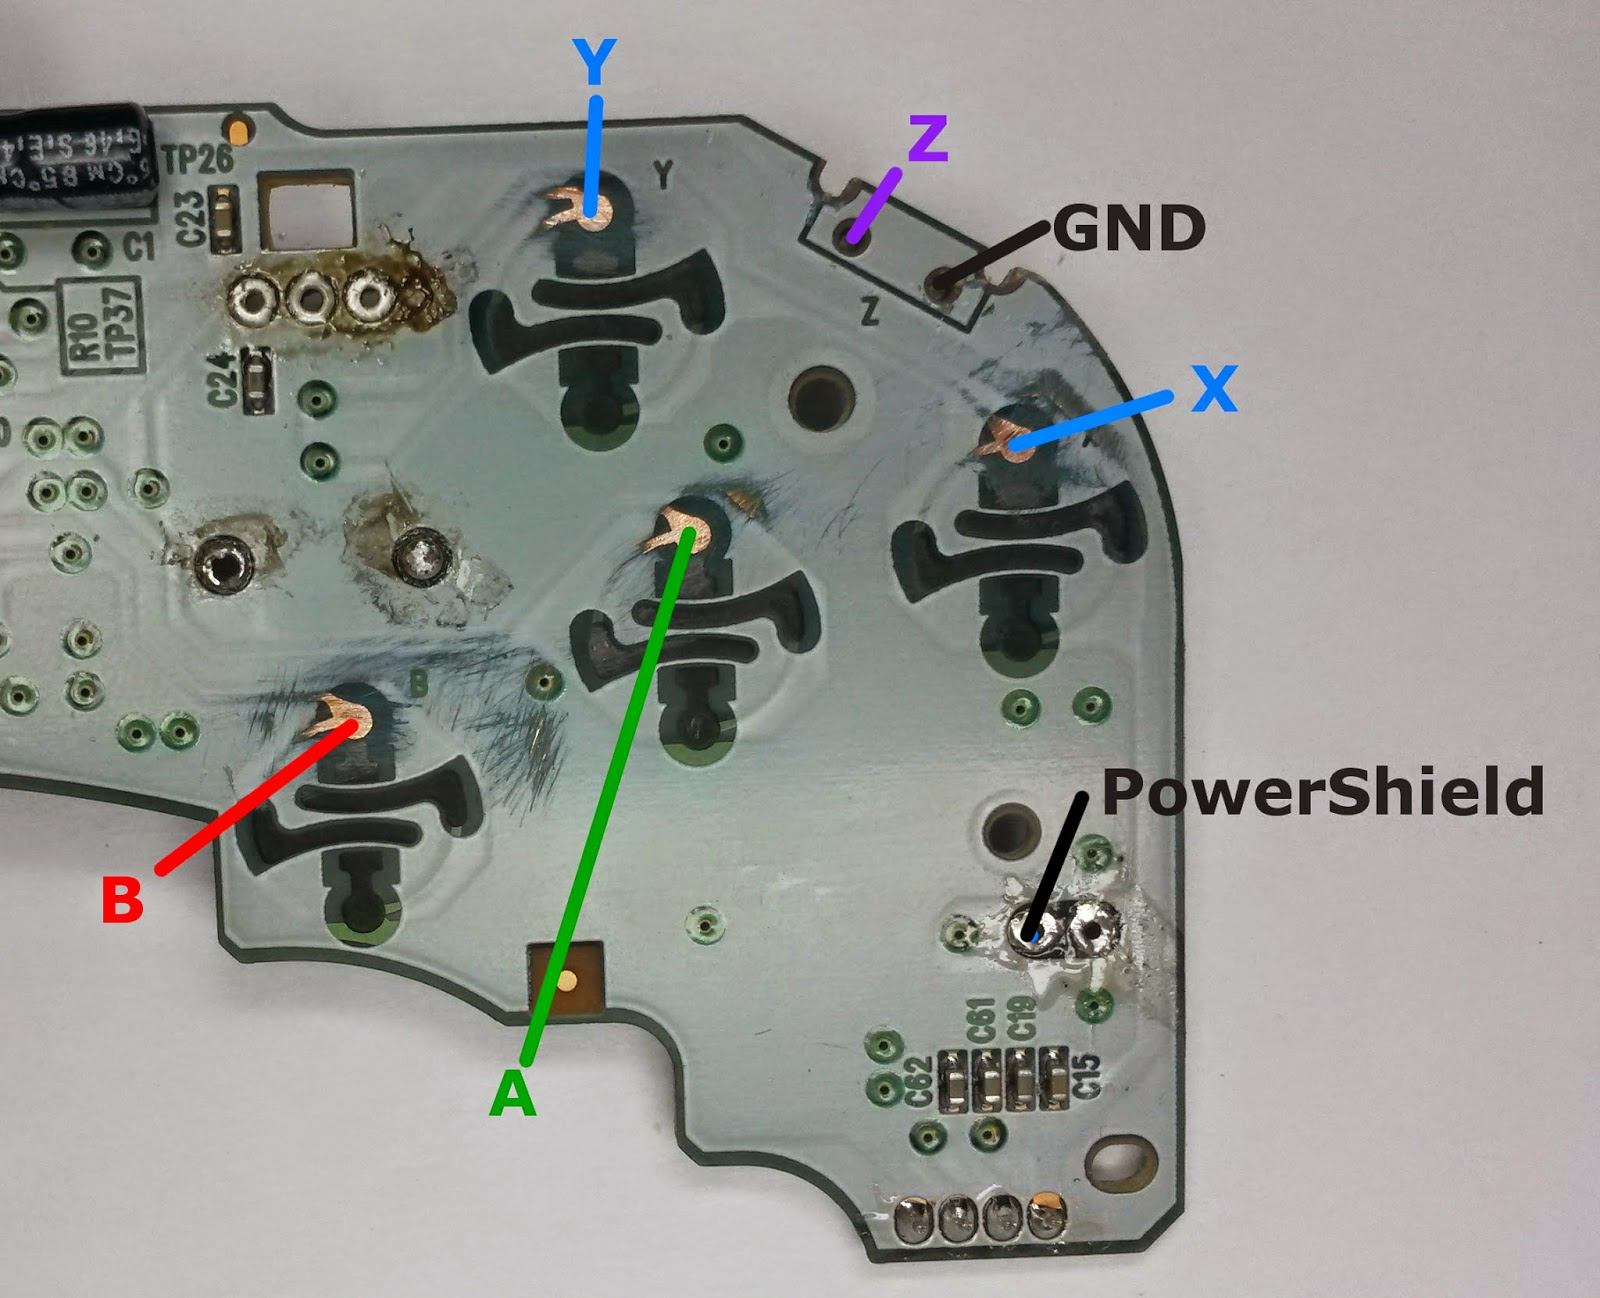 hight resolution of gamecube controller wiring diagram right stick simple wiring schema gamecube roms gamecube controller wiring diagram right stick